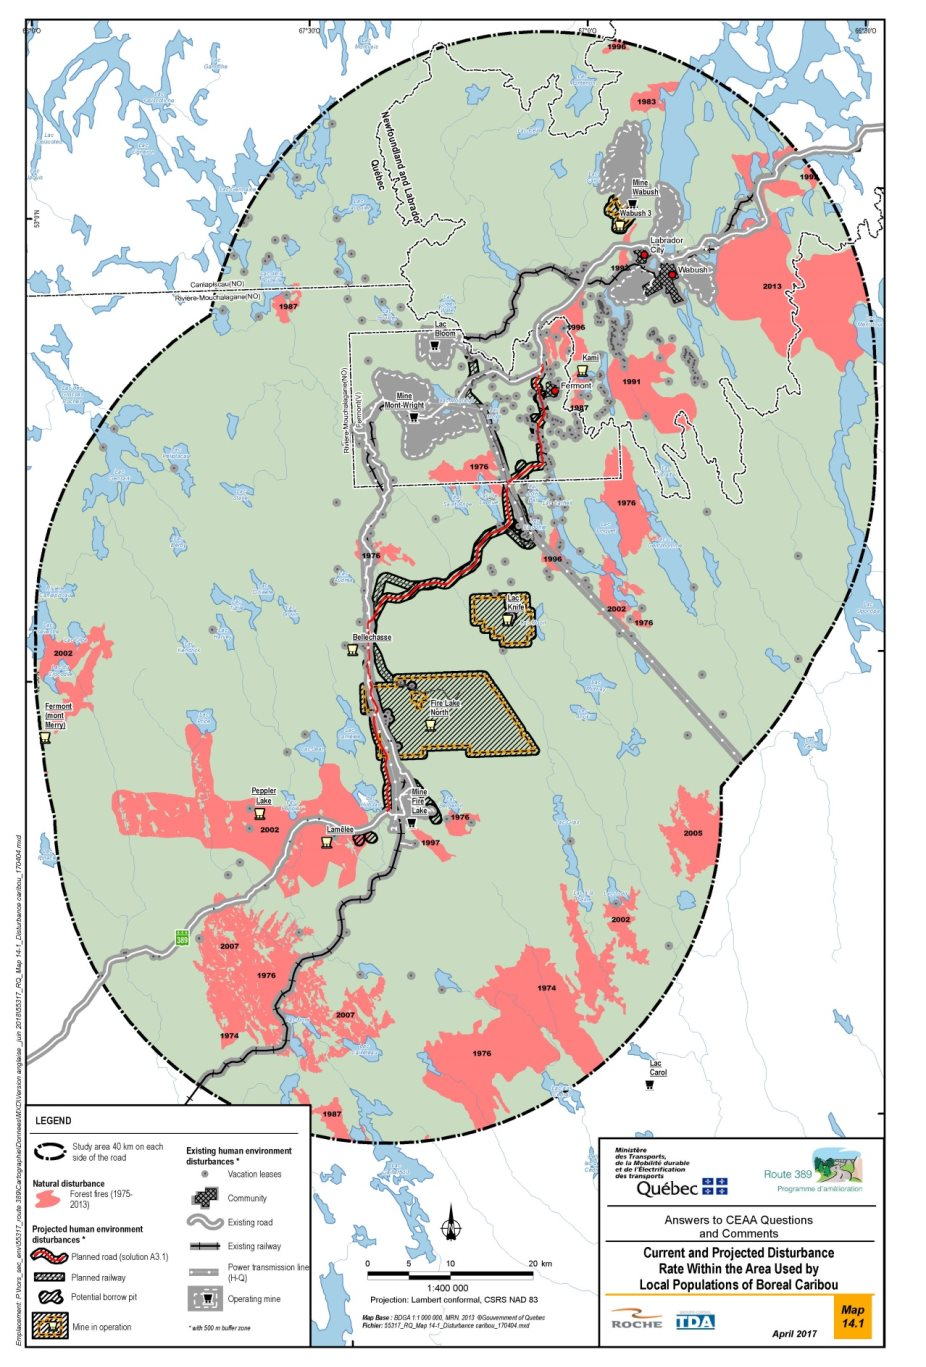 Figure 20: Existing and projected disturbance levels in the area used by local boreal caribou populations